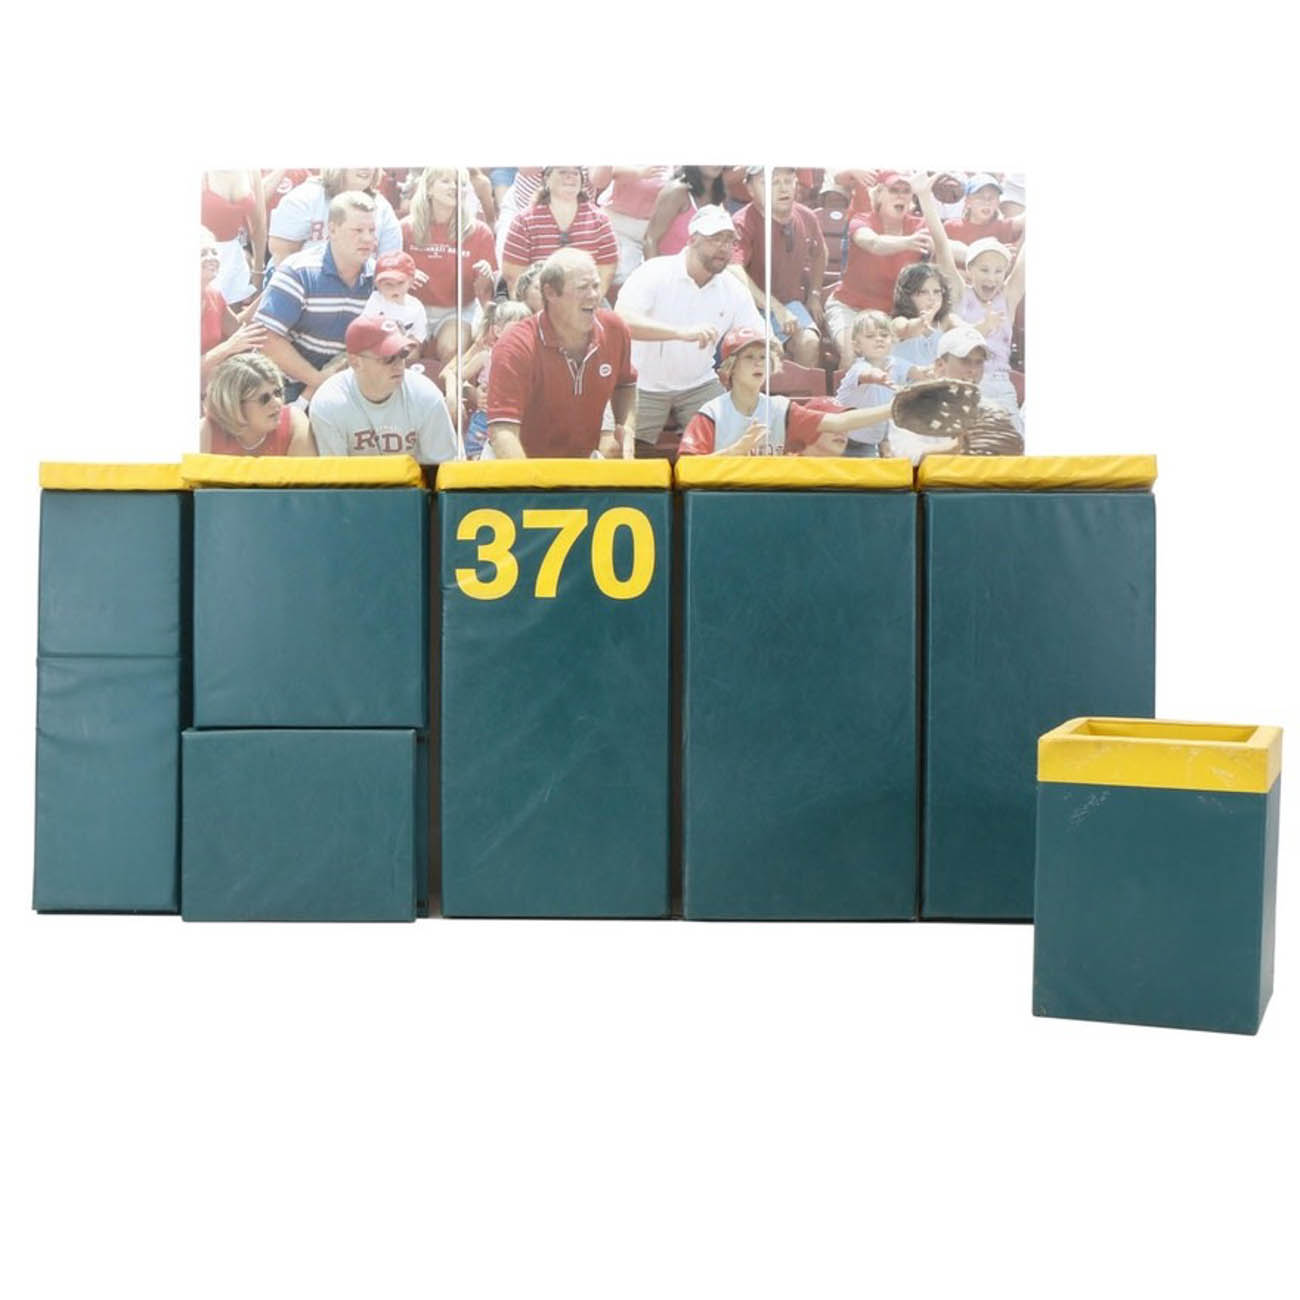 "This fan interaction display was one of the features in the Cincinnati Reds Hall of Fame. This display gave a museum visitor the chance to hold a glove and pretend to catch a long fly ball ""at the fence"". / Image courtesy of Everything But The House (EBTH) // Published: 12.6.18"